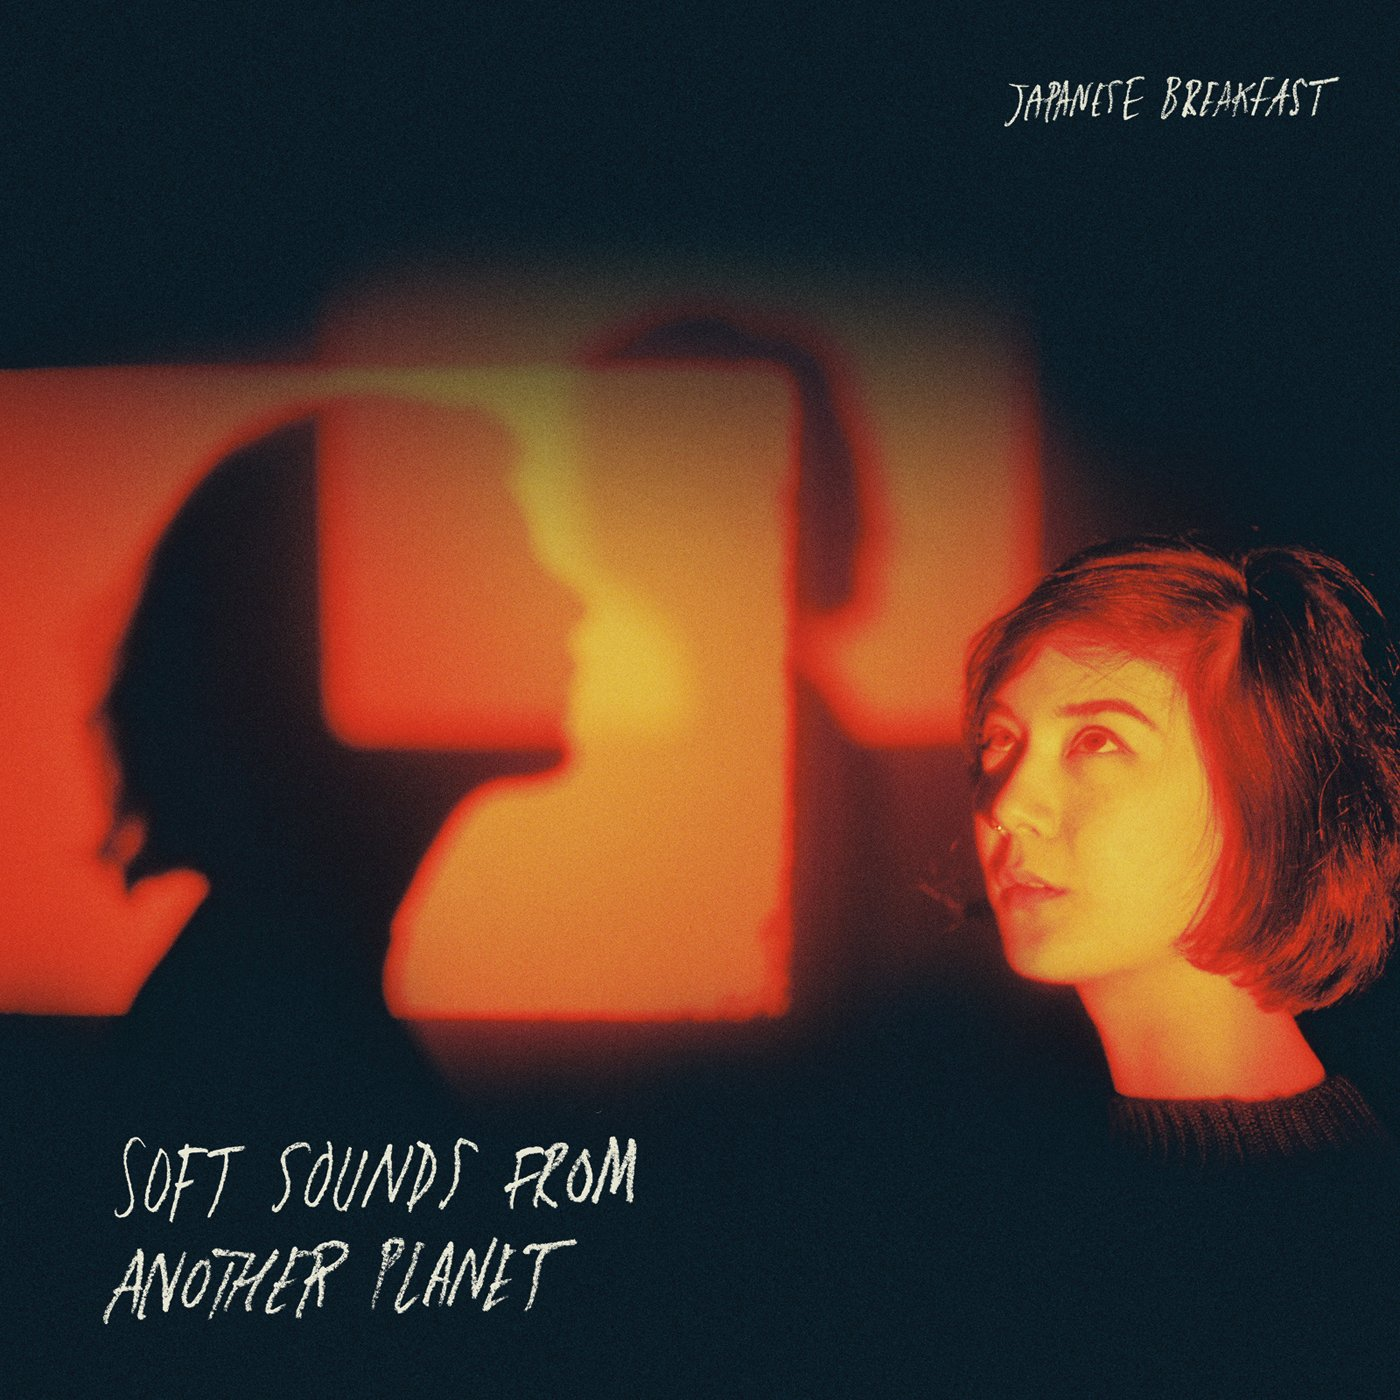 Vinilo : Japanese Breakfast - Soft Sounds From Another Planet (LP Vinyl)